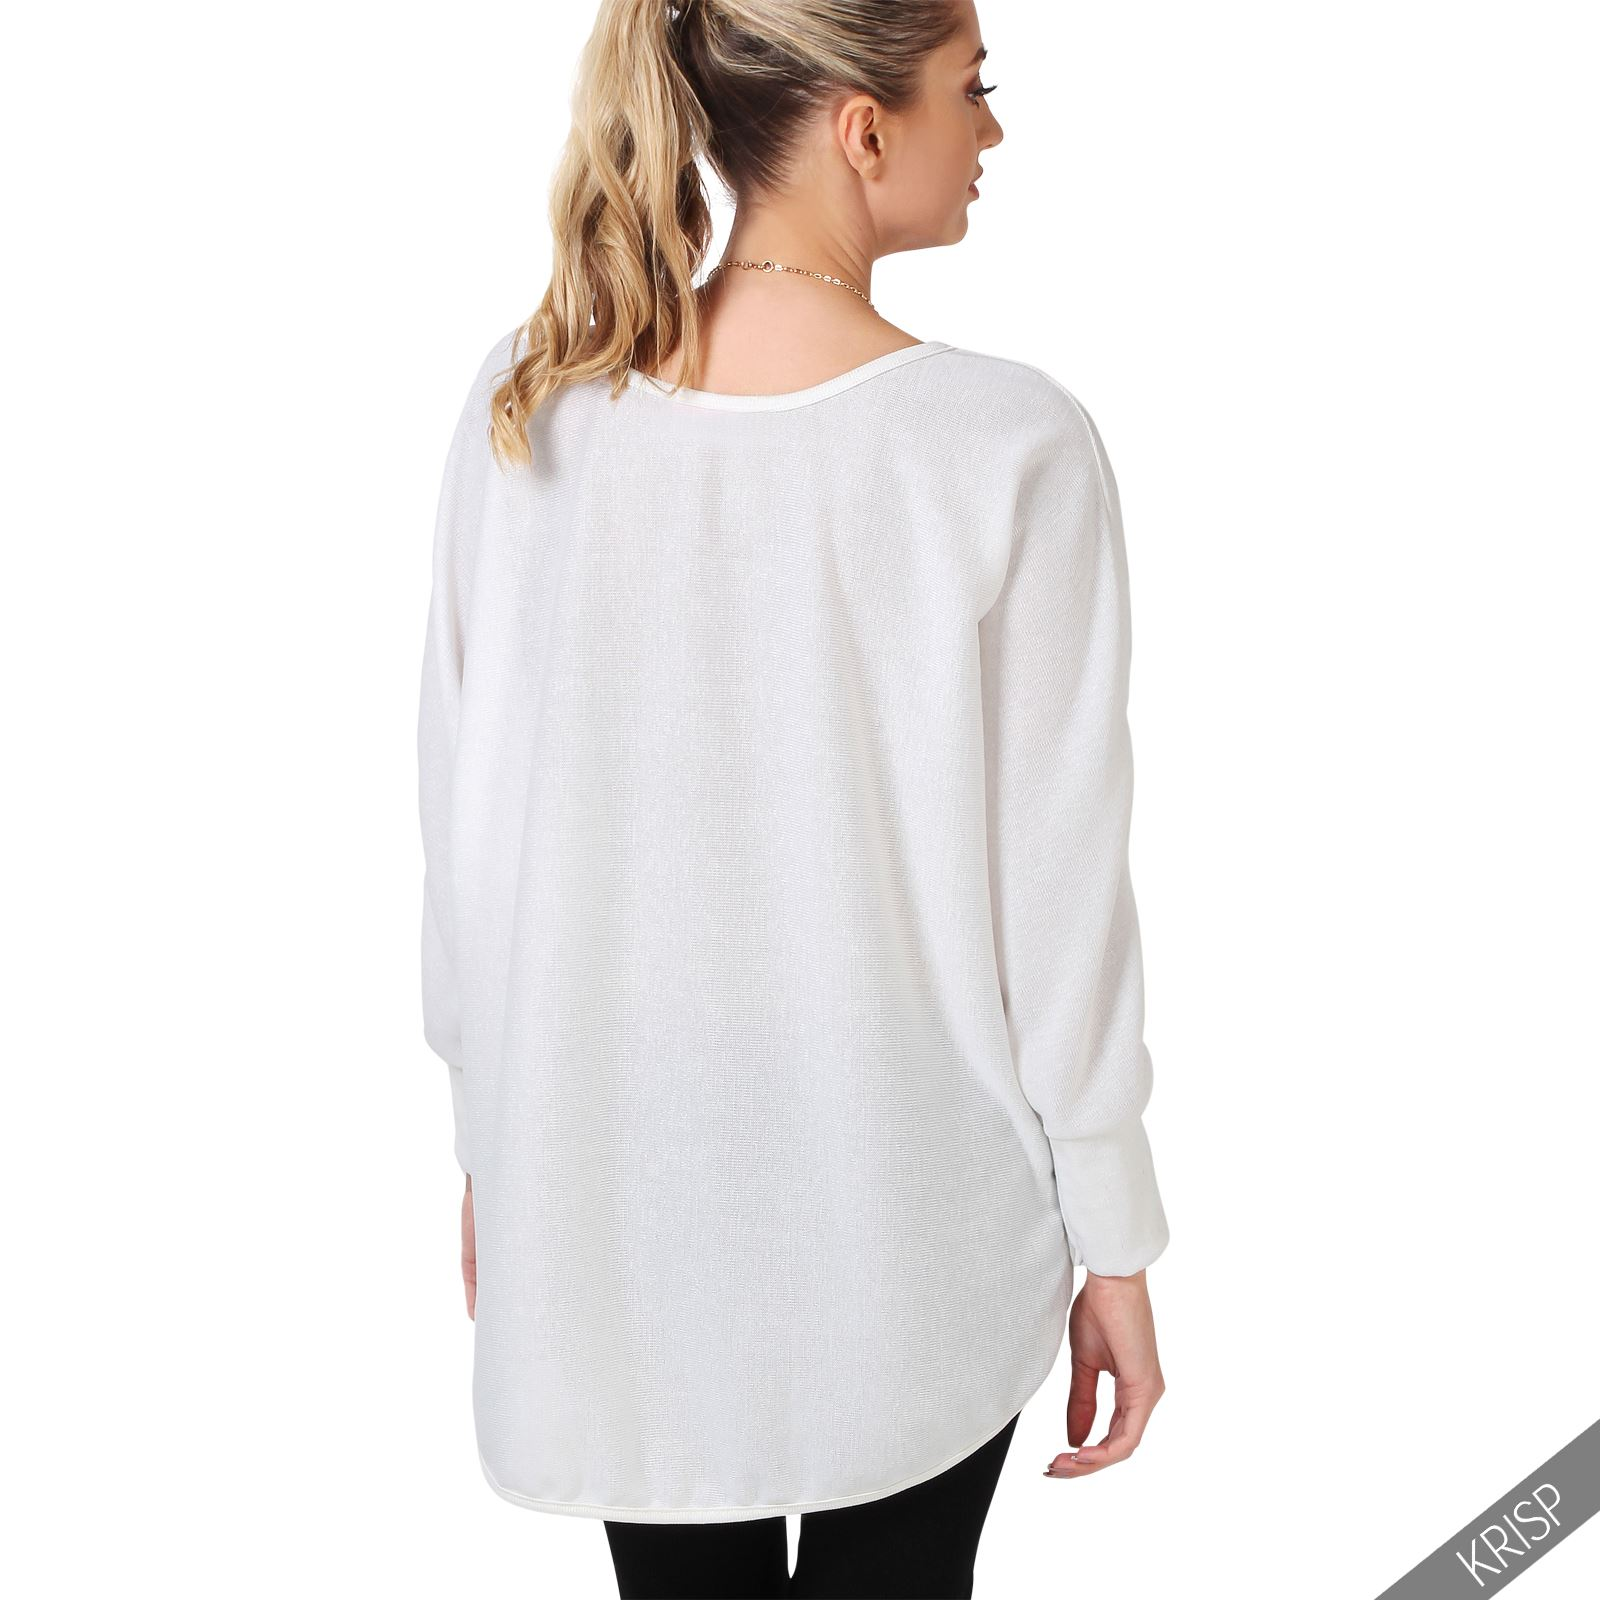 Shop cute women's tunics at up to 70% off on zulily. Find the perfect tunic from Apparel, Home & More· New Events Every Day· Hurry, Limited Inventory· New Deals Every Day57,+ followers on Twitter.